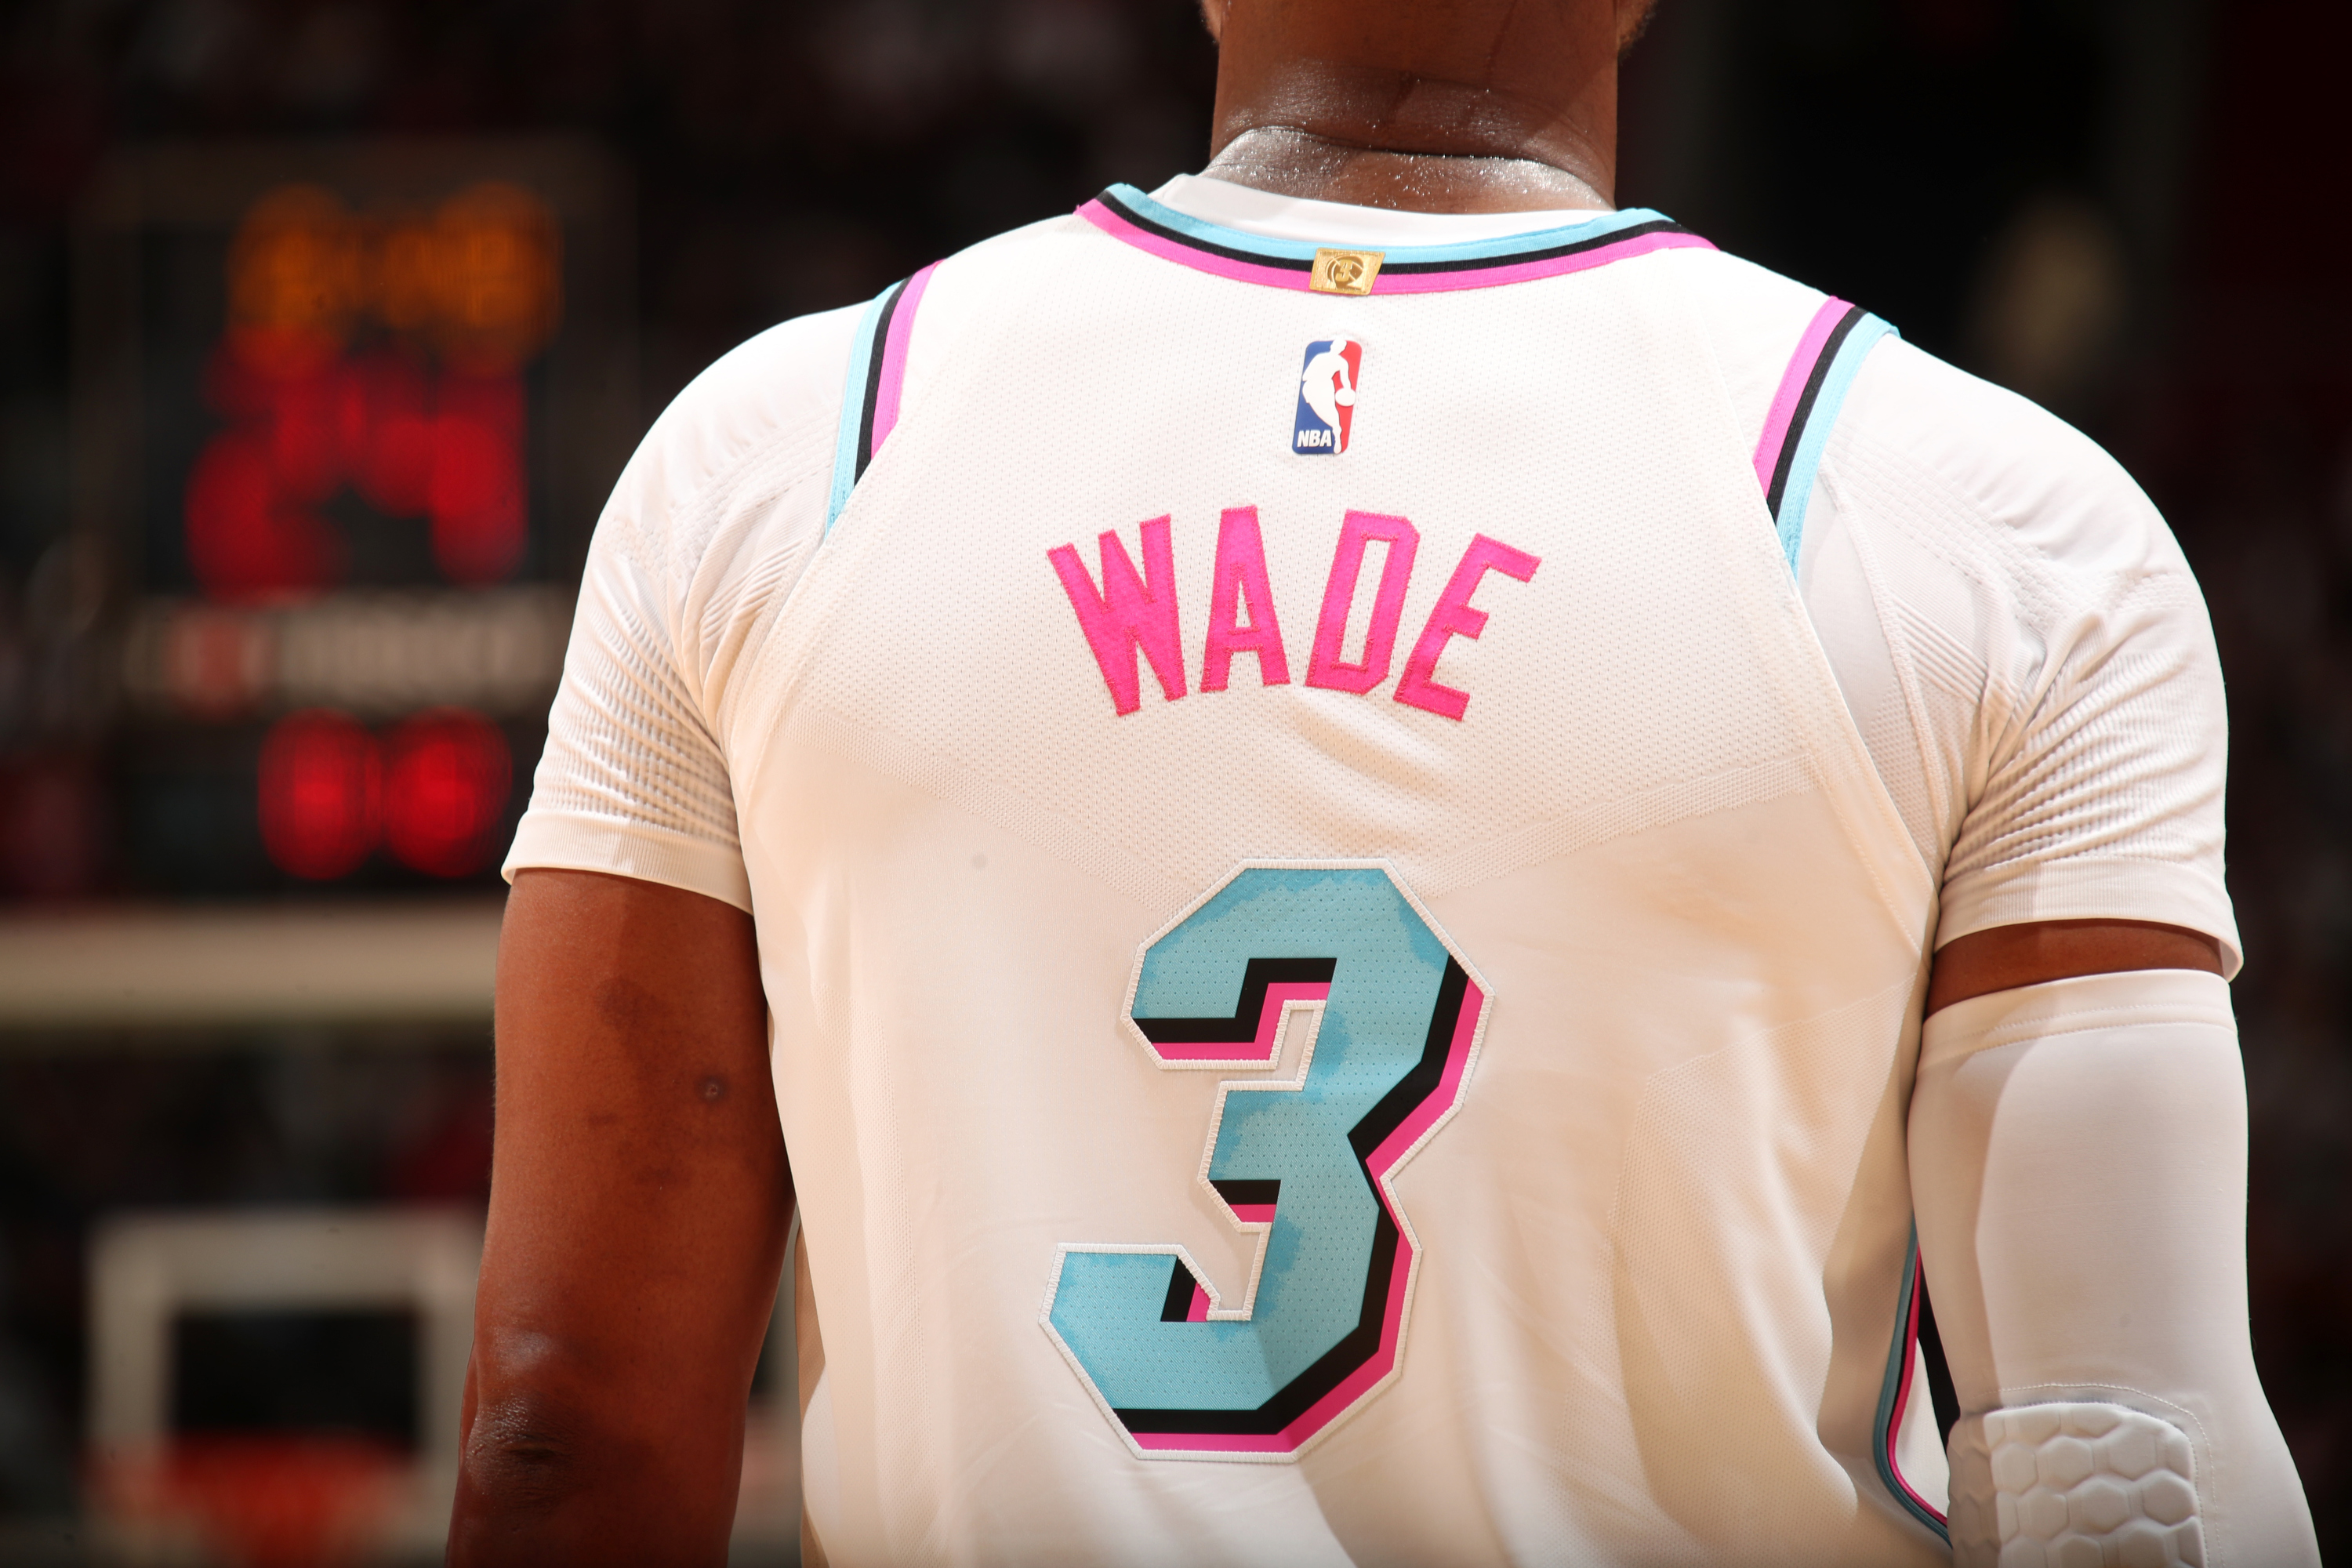 78a18d01a35 NBA  Stocks run out for Dwayne Wade s  Miami Vice  jersey following his  return